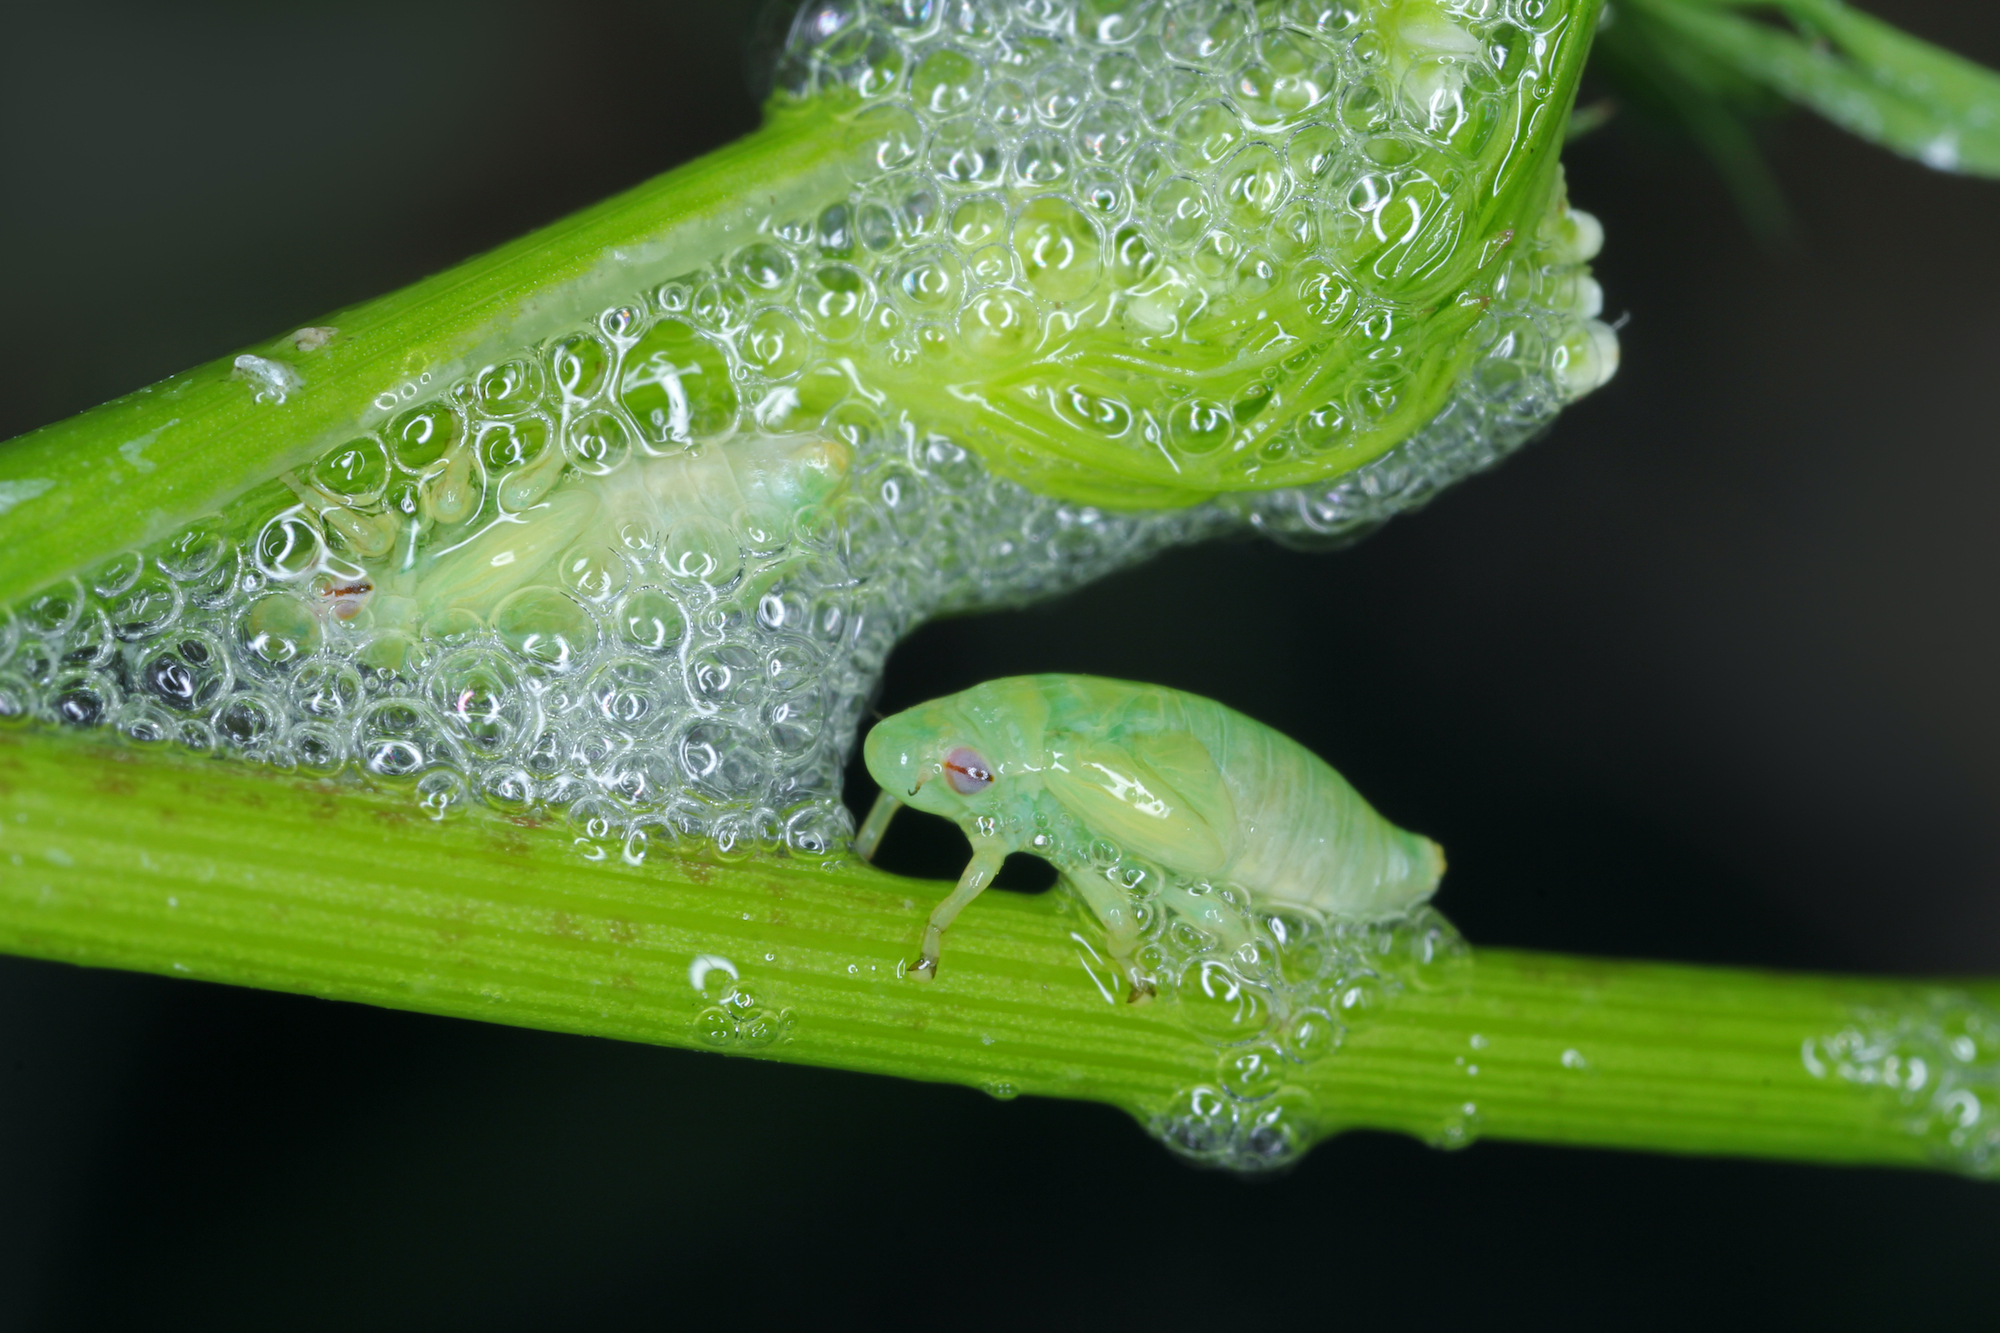 A green spittlebug nymph sits beside the foam substance on a green plant